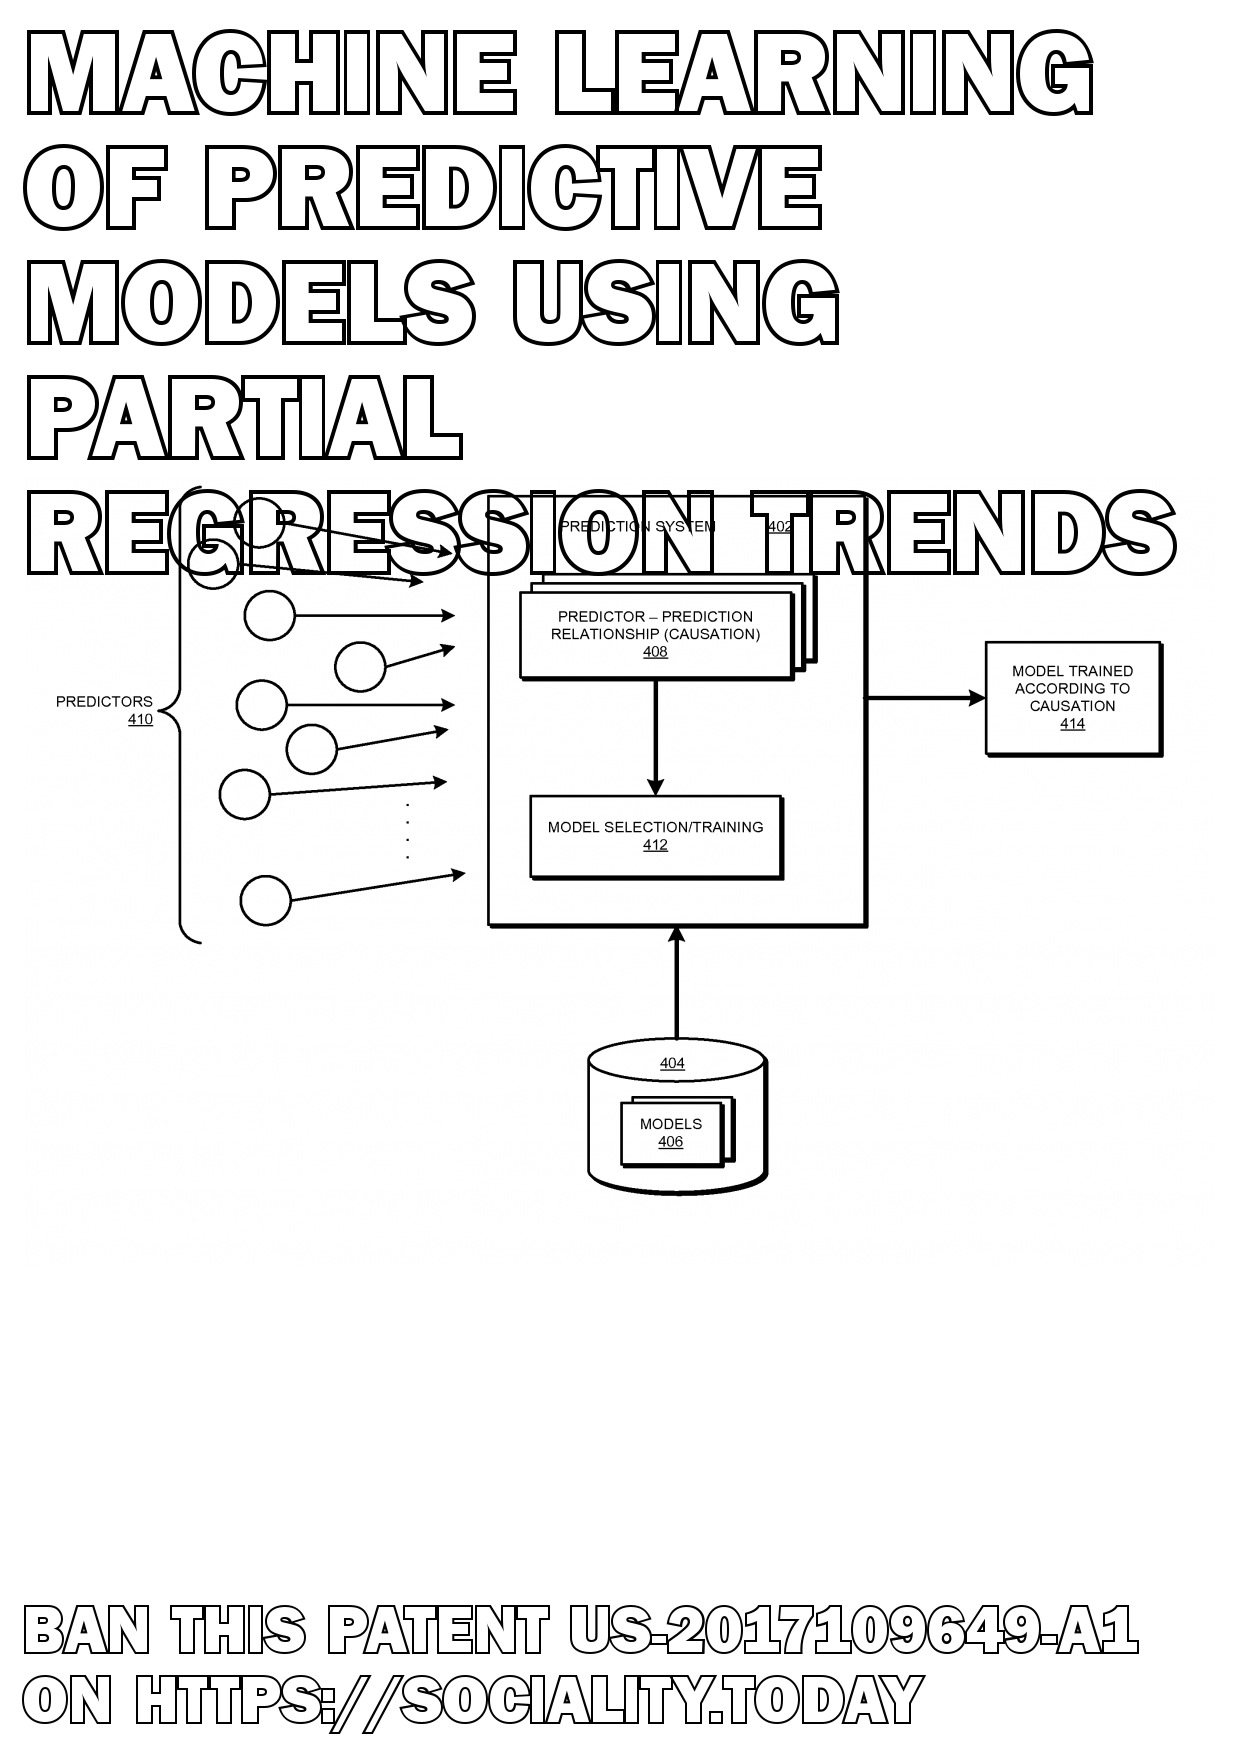 Machine learning of predictive models using partial regression trends  - US-2017109649-A1